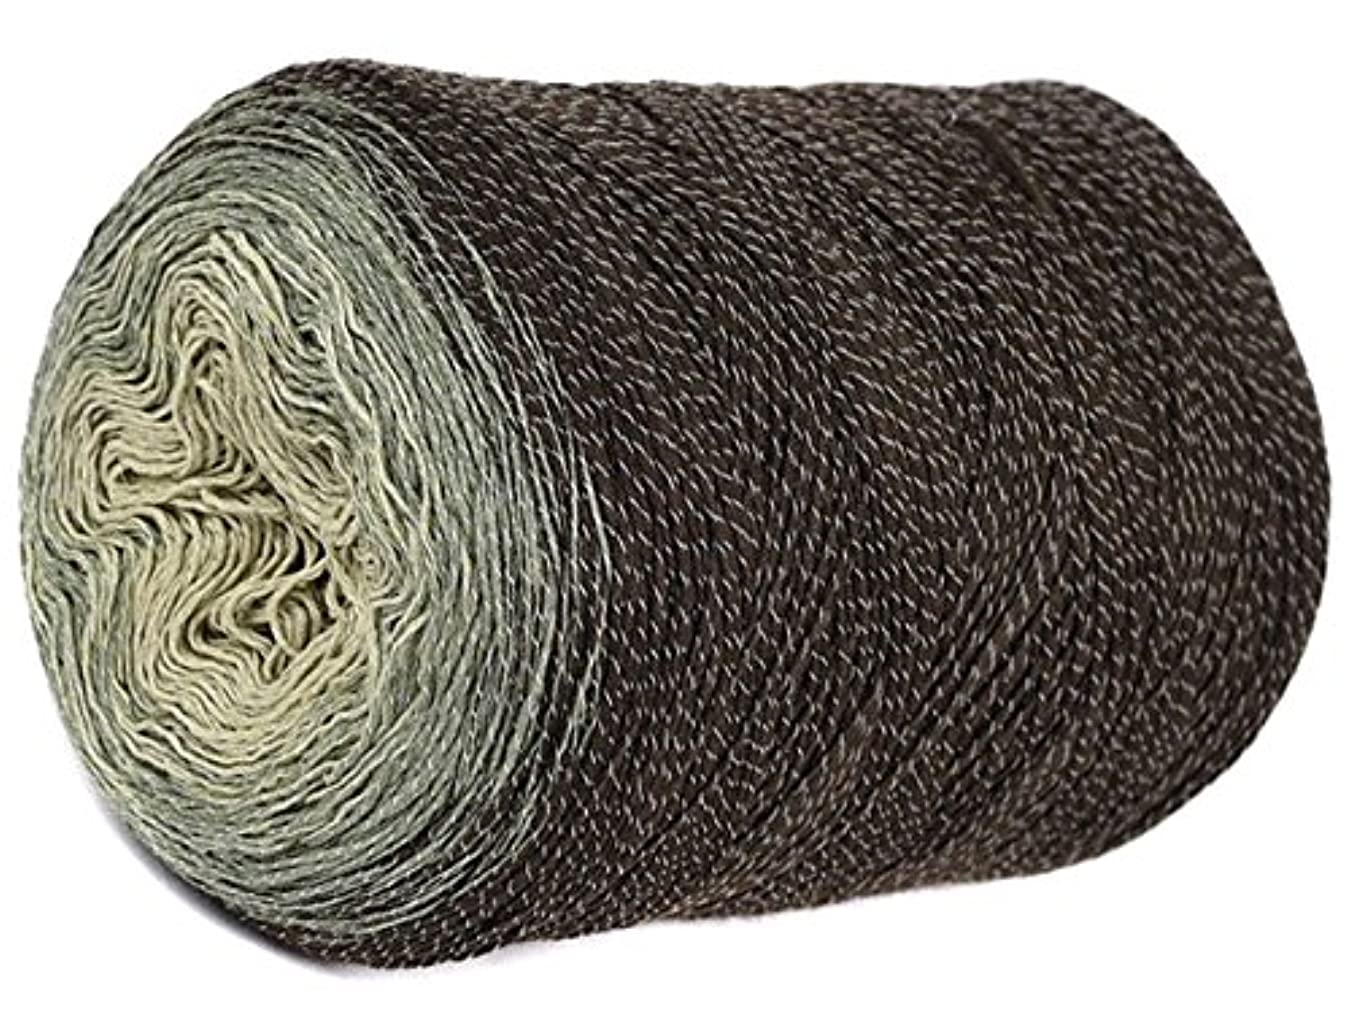 Unique Ombre Yarn – Multicolor - Wonderful Cotton Knitting Roll - for Knitting and Crocheting - 9.88 oz / 984 Yards - 85% Pure Cotton, 15% Polyester (222) f4937808999